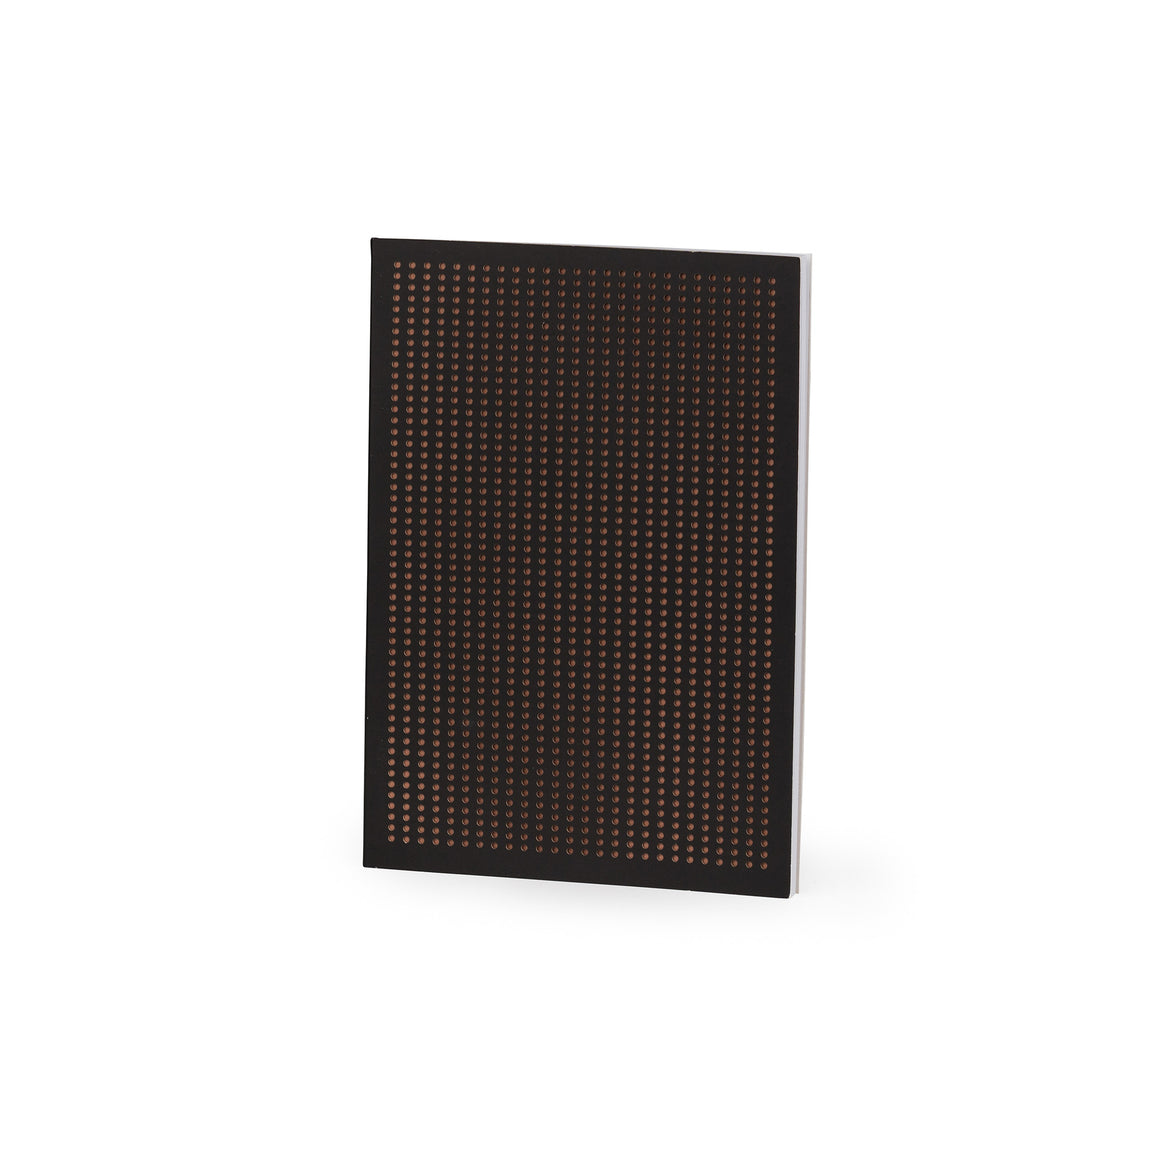 Perforated Black And Copper Grid A5 Notebook - The Love Trees